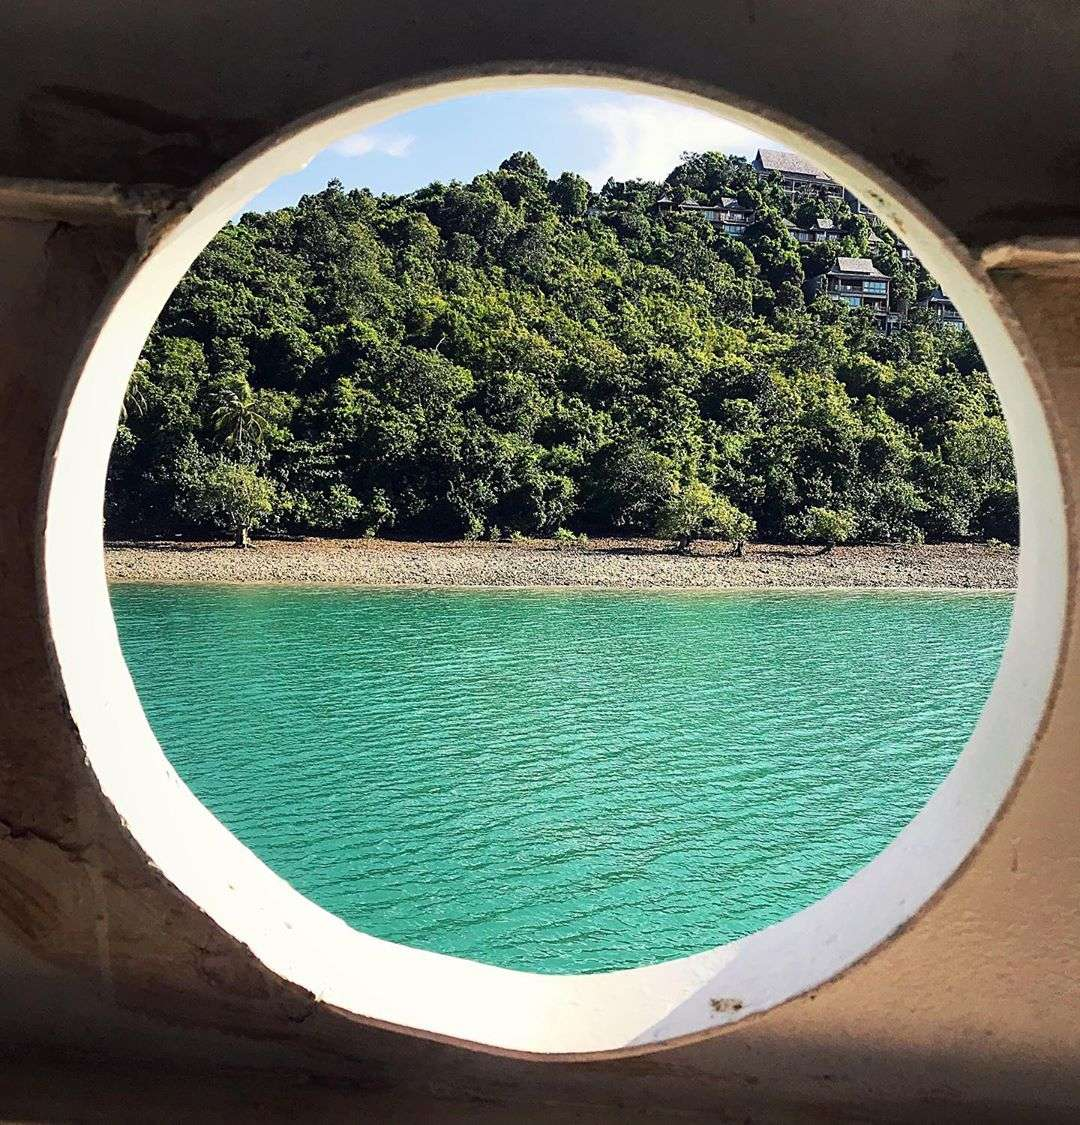 Koh Yao Yai seen from a ship - through a large round hole